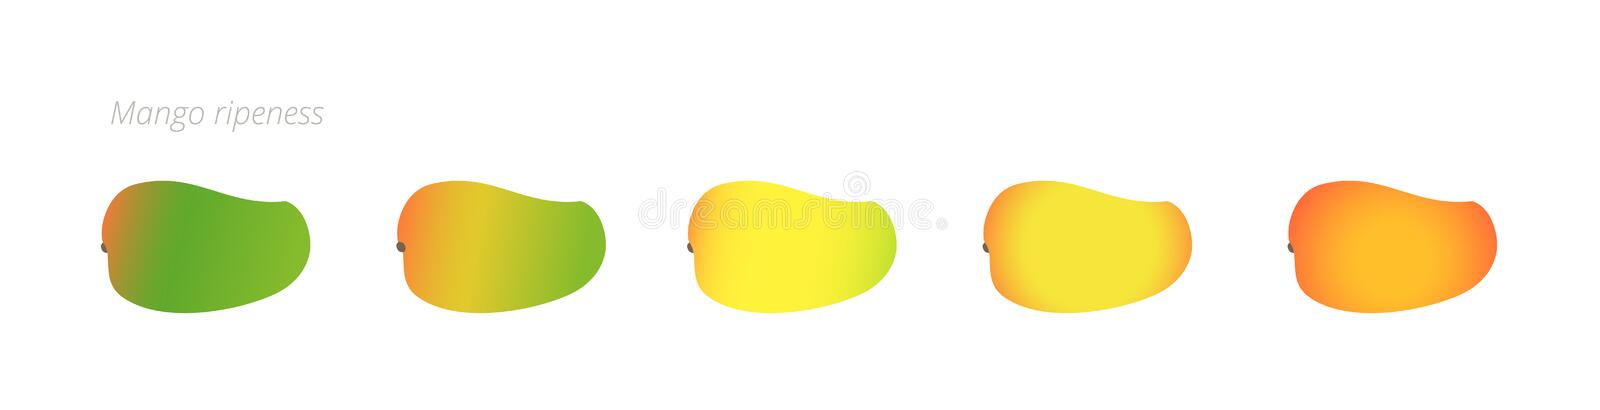 Mango ripeness stages chart. Colour gradation set fruit plant. Ripening plantains. From green to yellow and red gradient. Animation period progression. Vector royalty free illustration